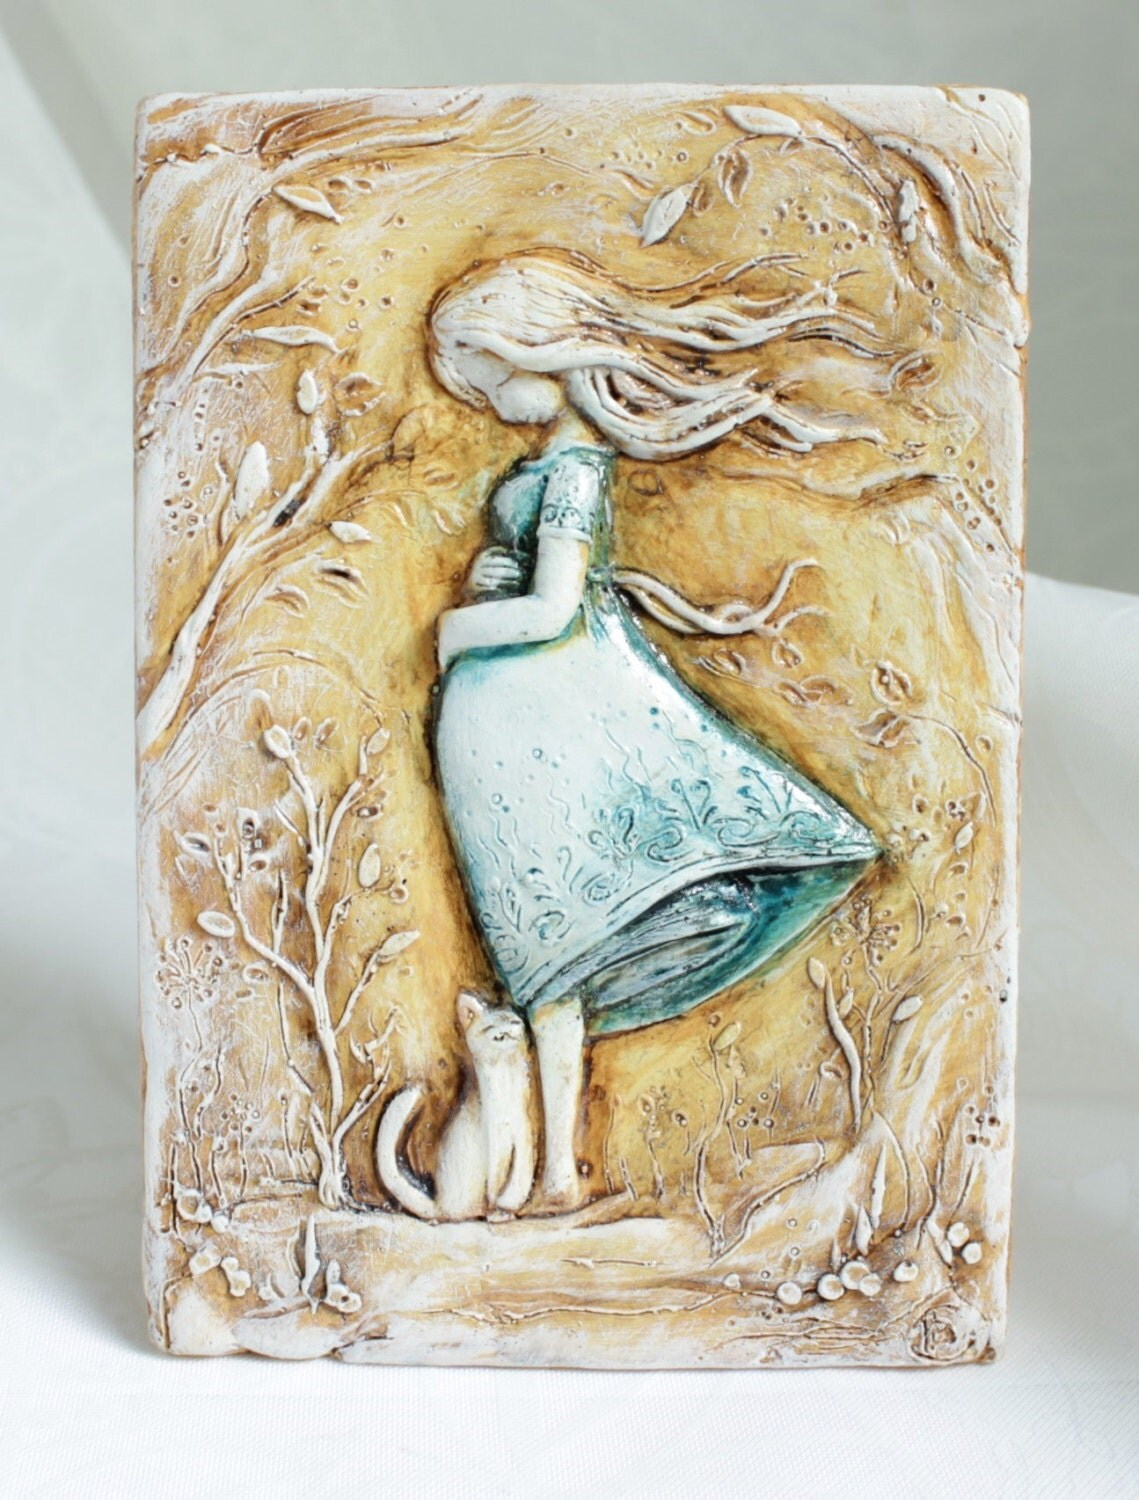 Expectant mom maternity cat decorative tile bas relief relief wall ...